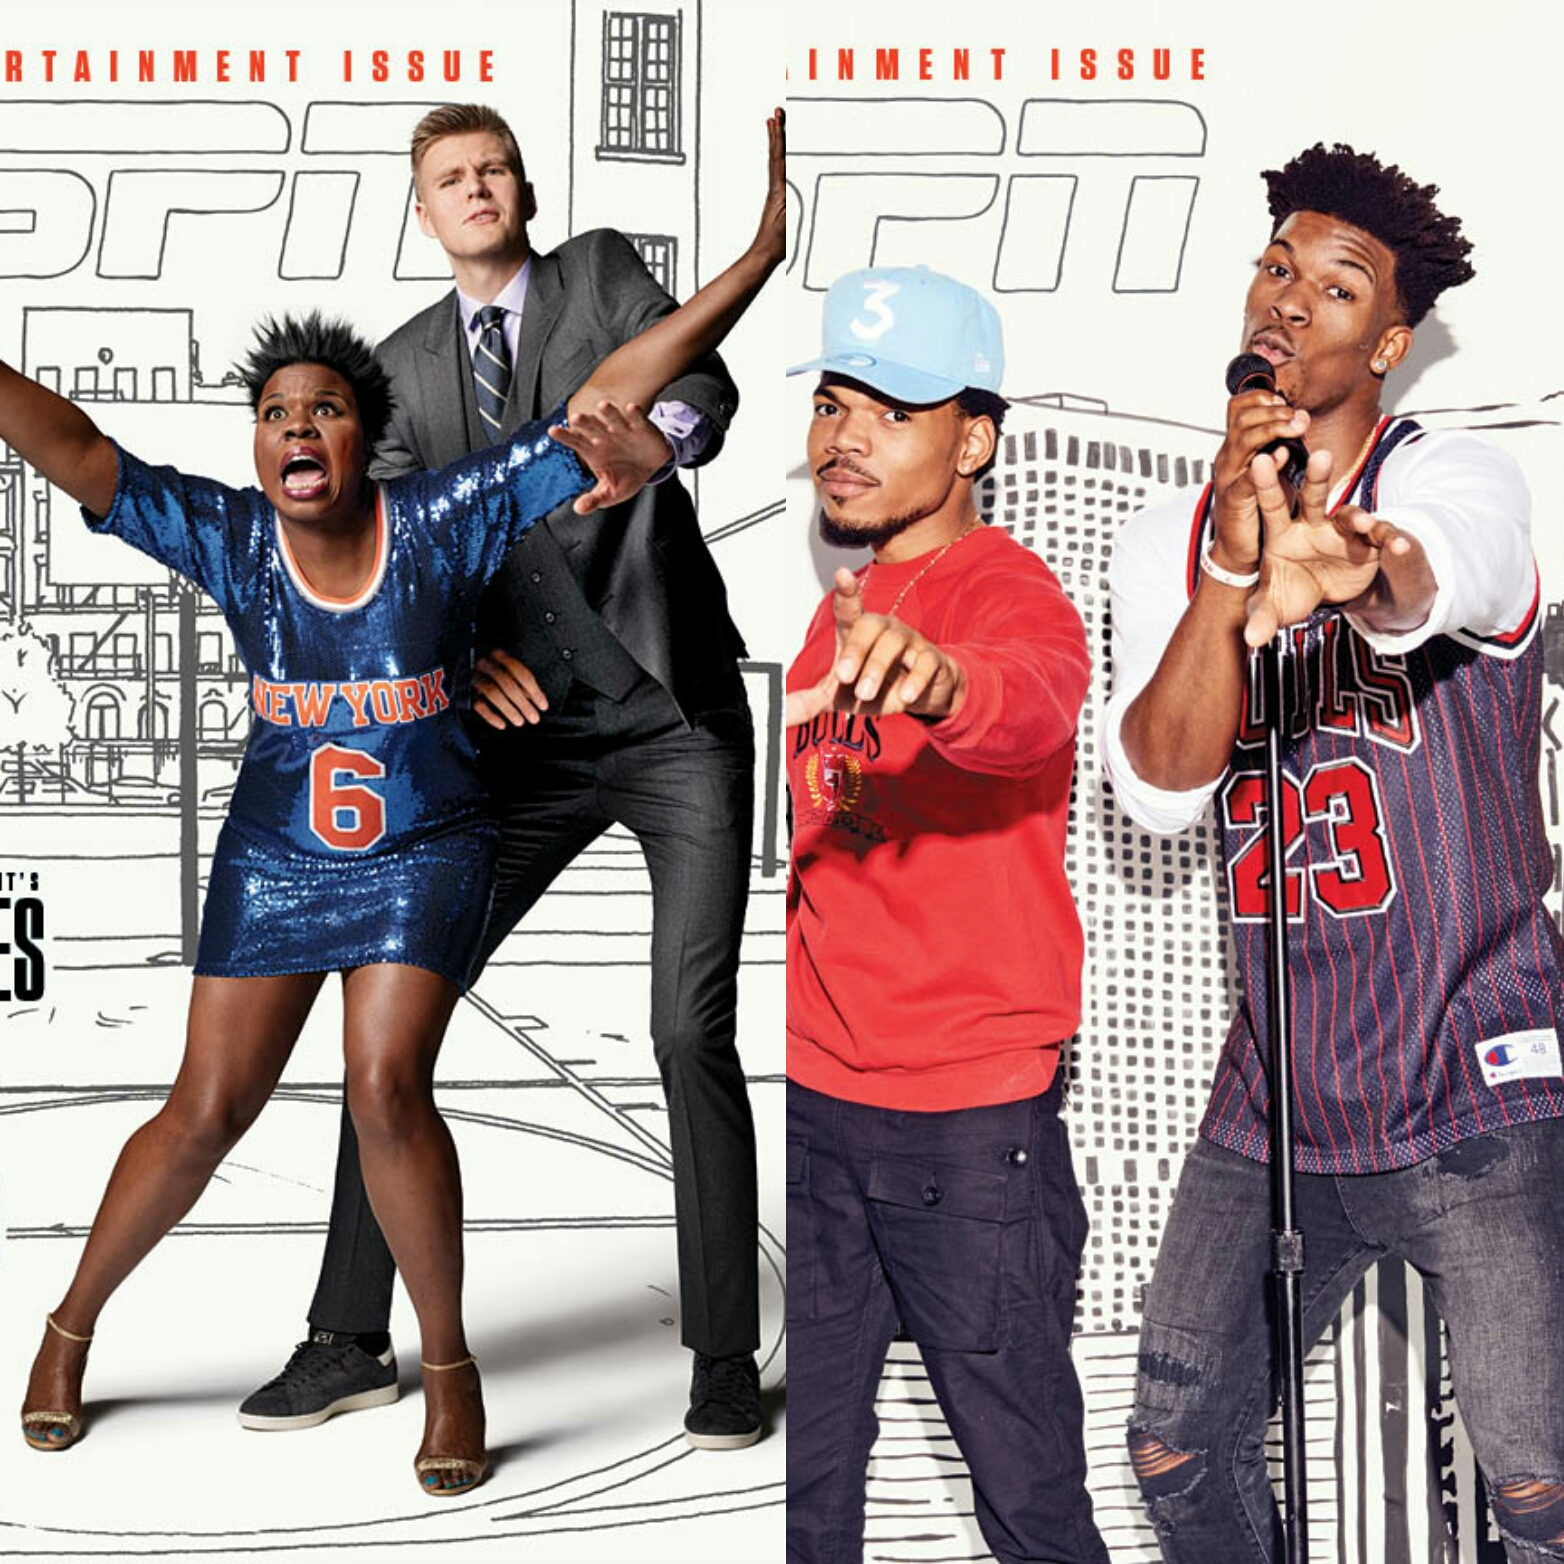 ESPN The Magazine's Entertainment Issue Features Kristaps Porzingis & Jimmy Butler Paired With Leslie Jones & Chance The Rapper